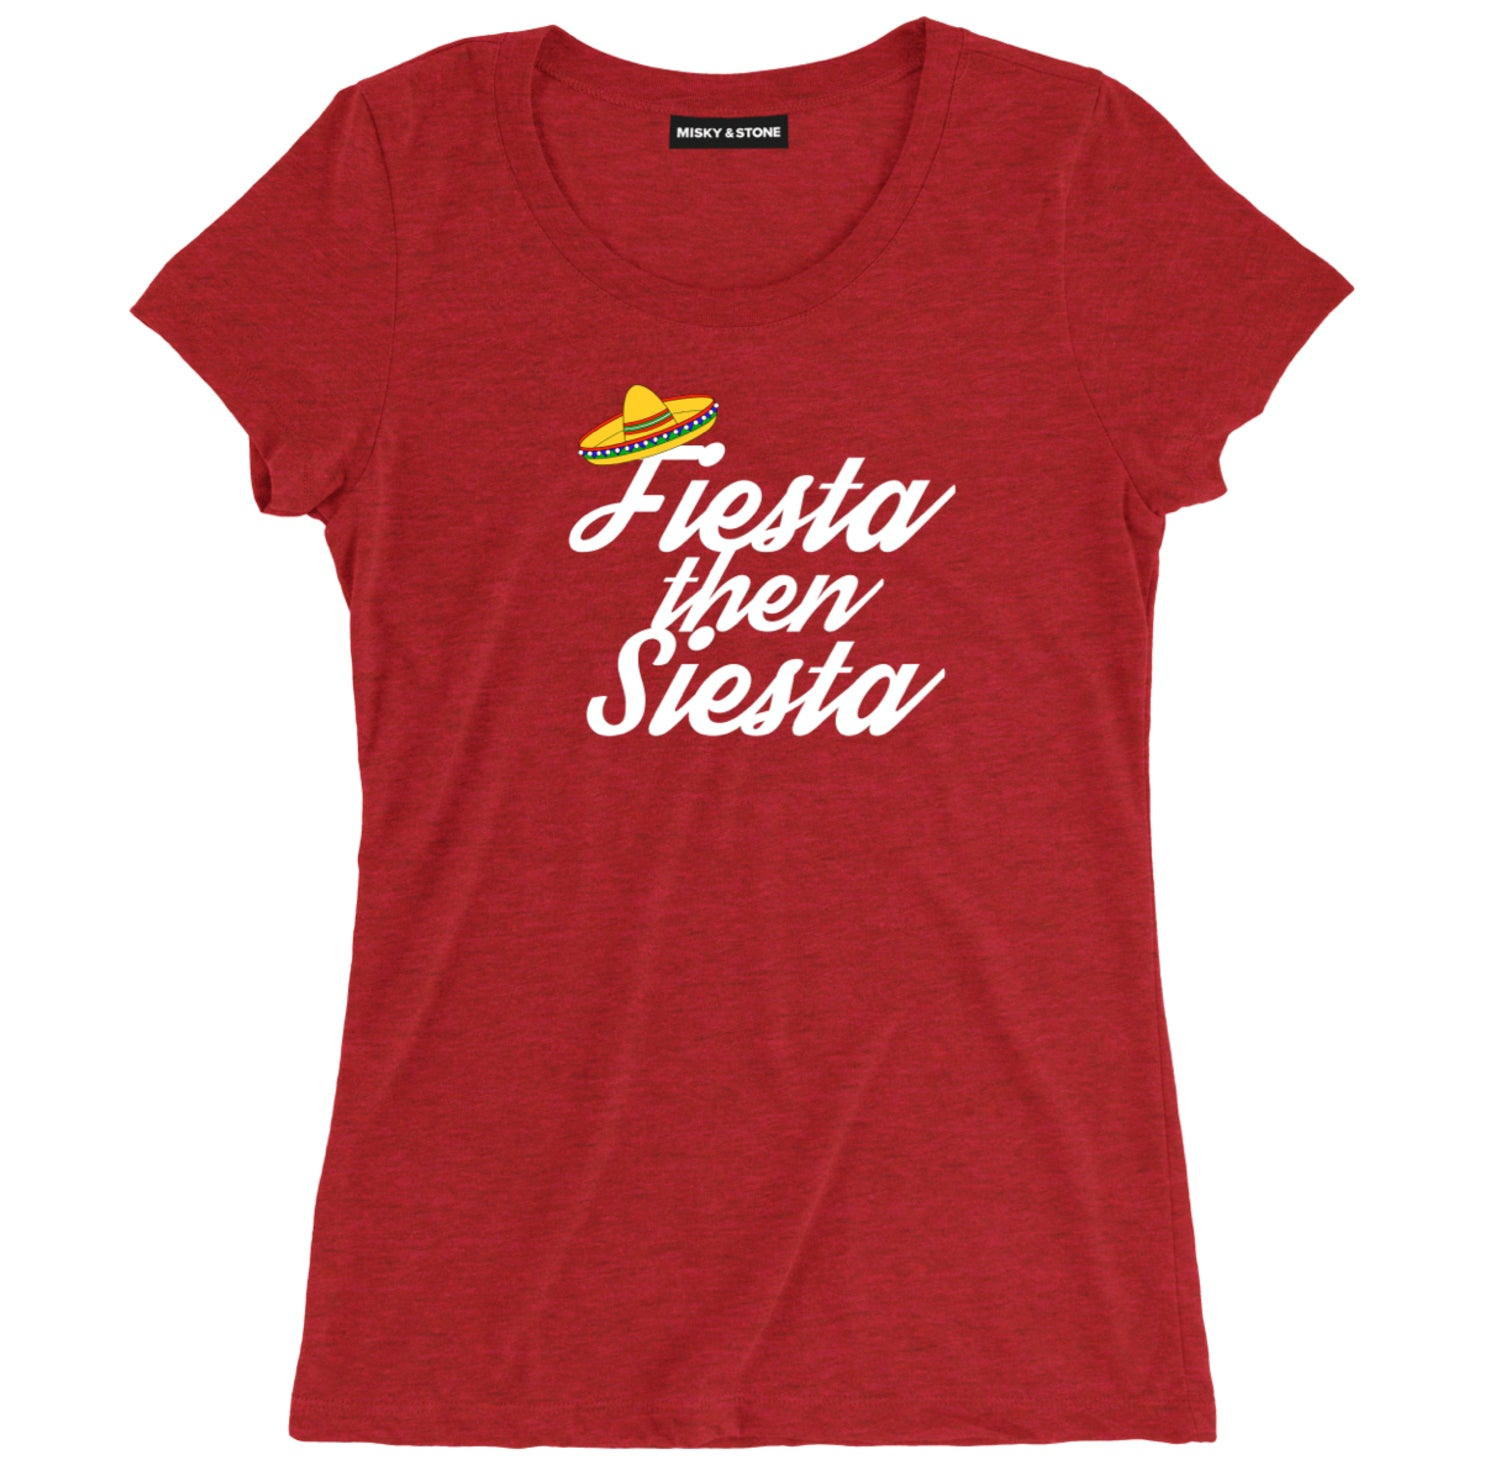 fiesta then siesta meme tee shirt, fiesta then siesta meme apparel, fiesta then siesta meme merch, mexican meme clothing, funny meme tee shirt,